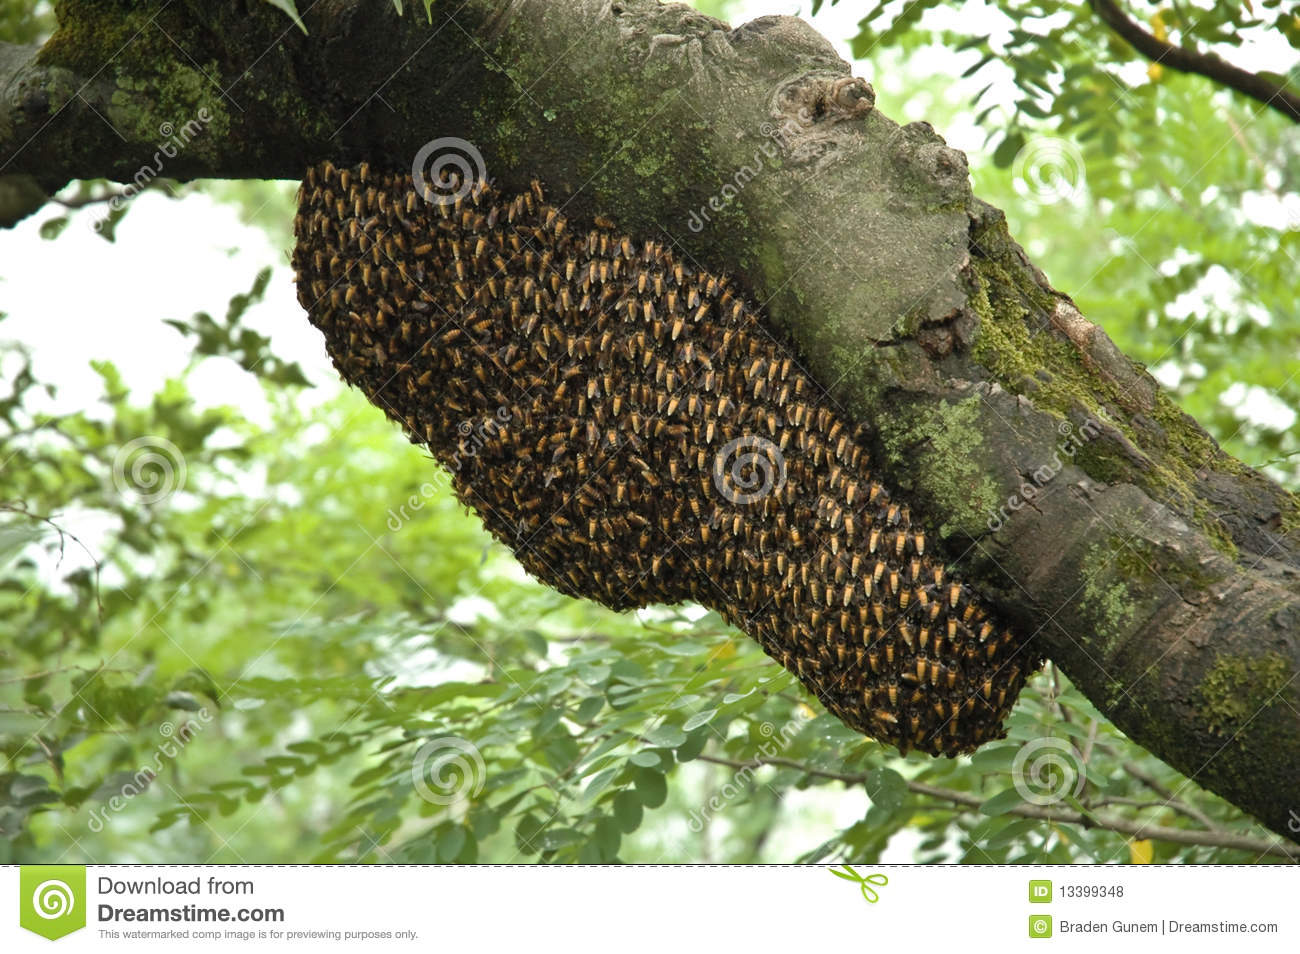 Royalty Free Stock Photos Bee Hive Image13399348 on Parts Of An Earthworm